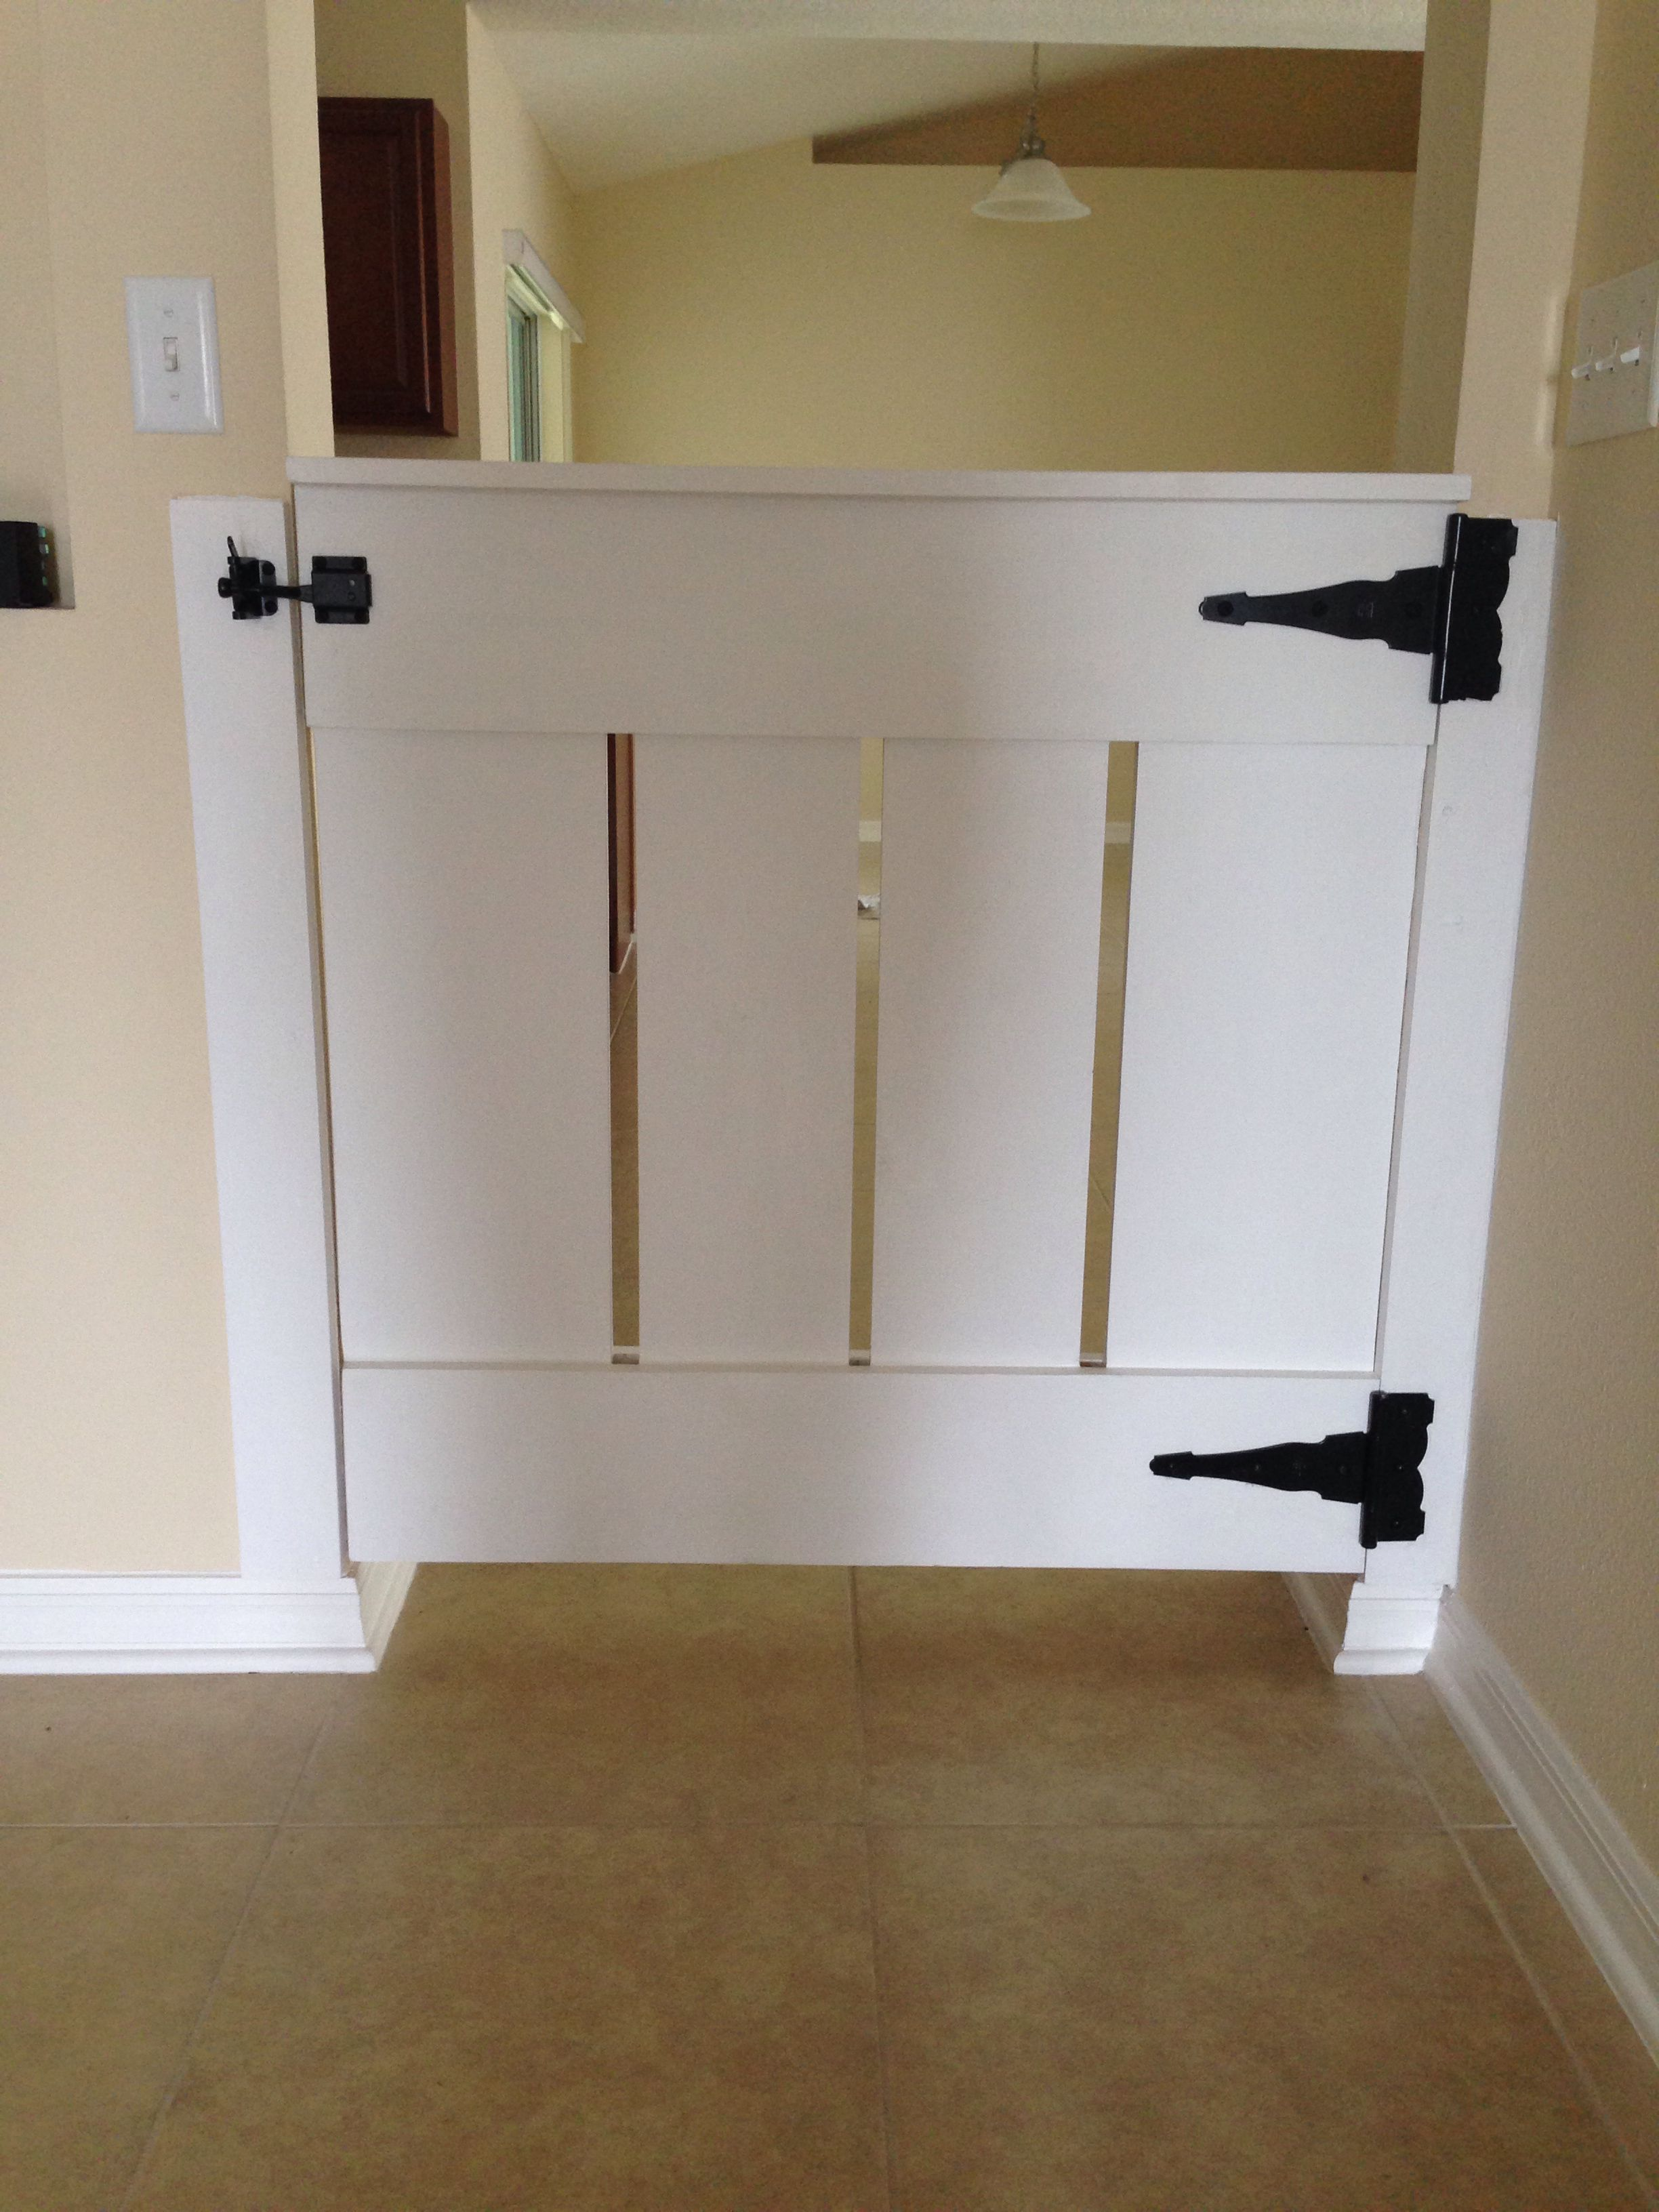 Dutch Door Baby Gate Homemade Wood Baby Gate Built By Ed Starnes For The Home